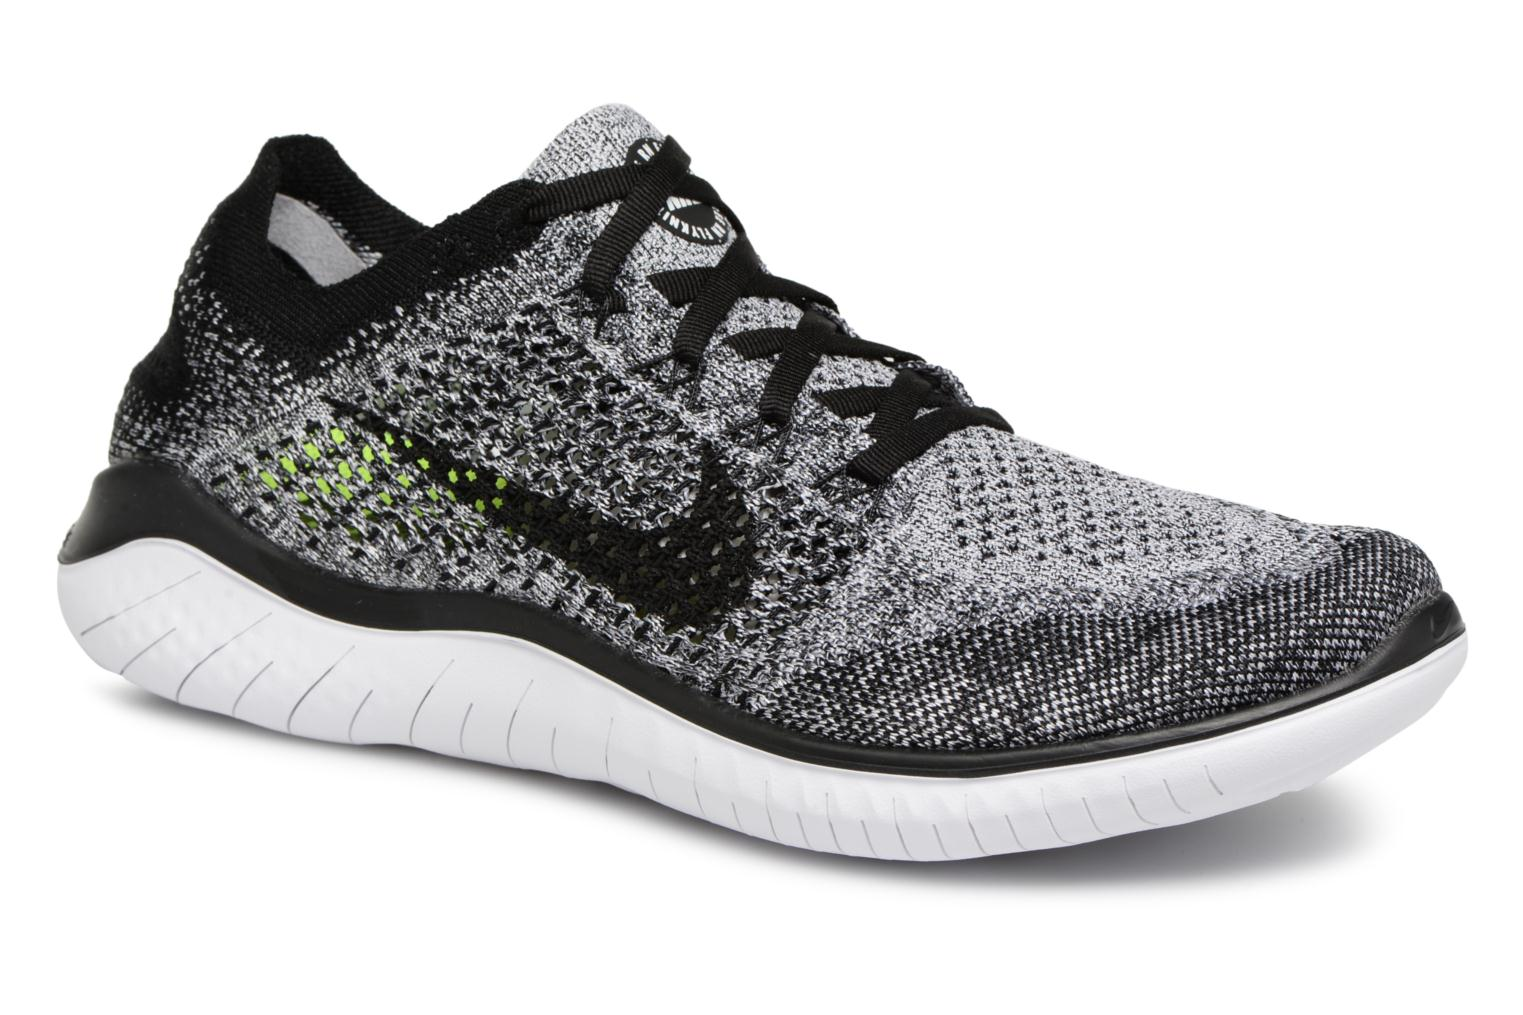 competitive price 6f4ce 13255 Free Rn Flyknit 2018 - Chaussures